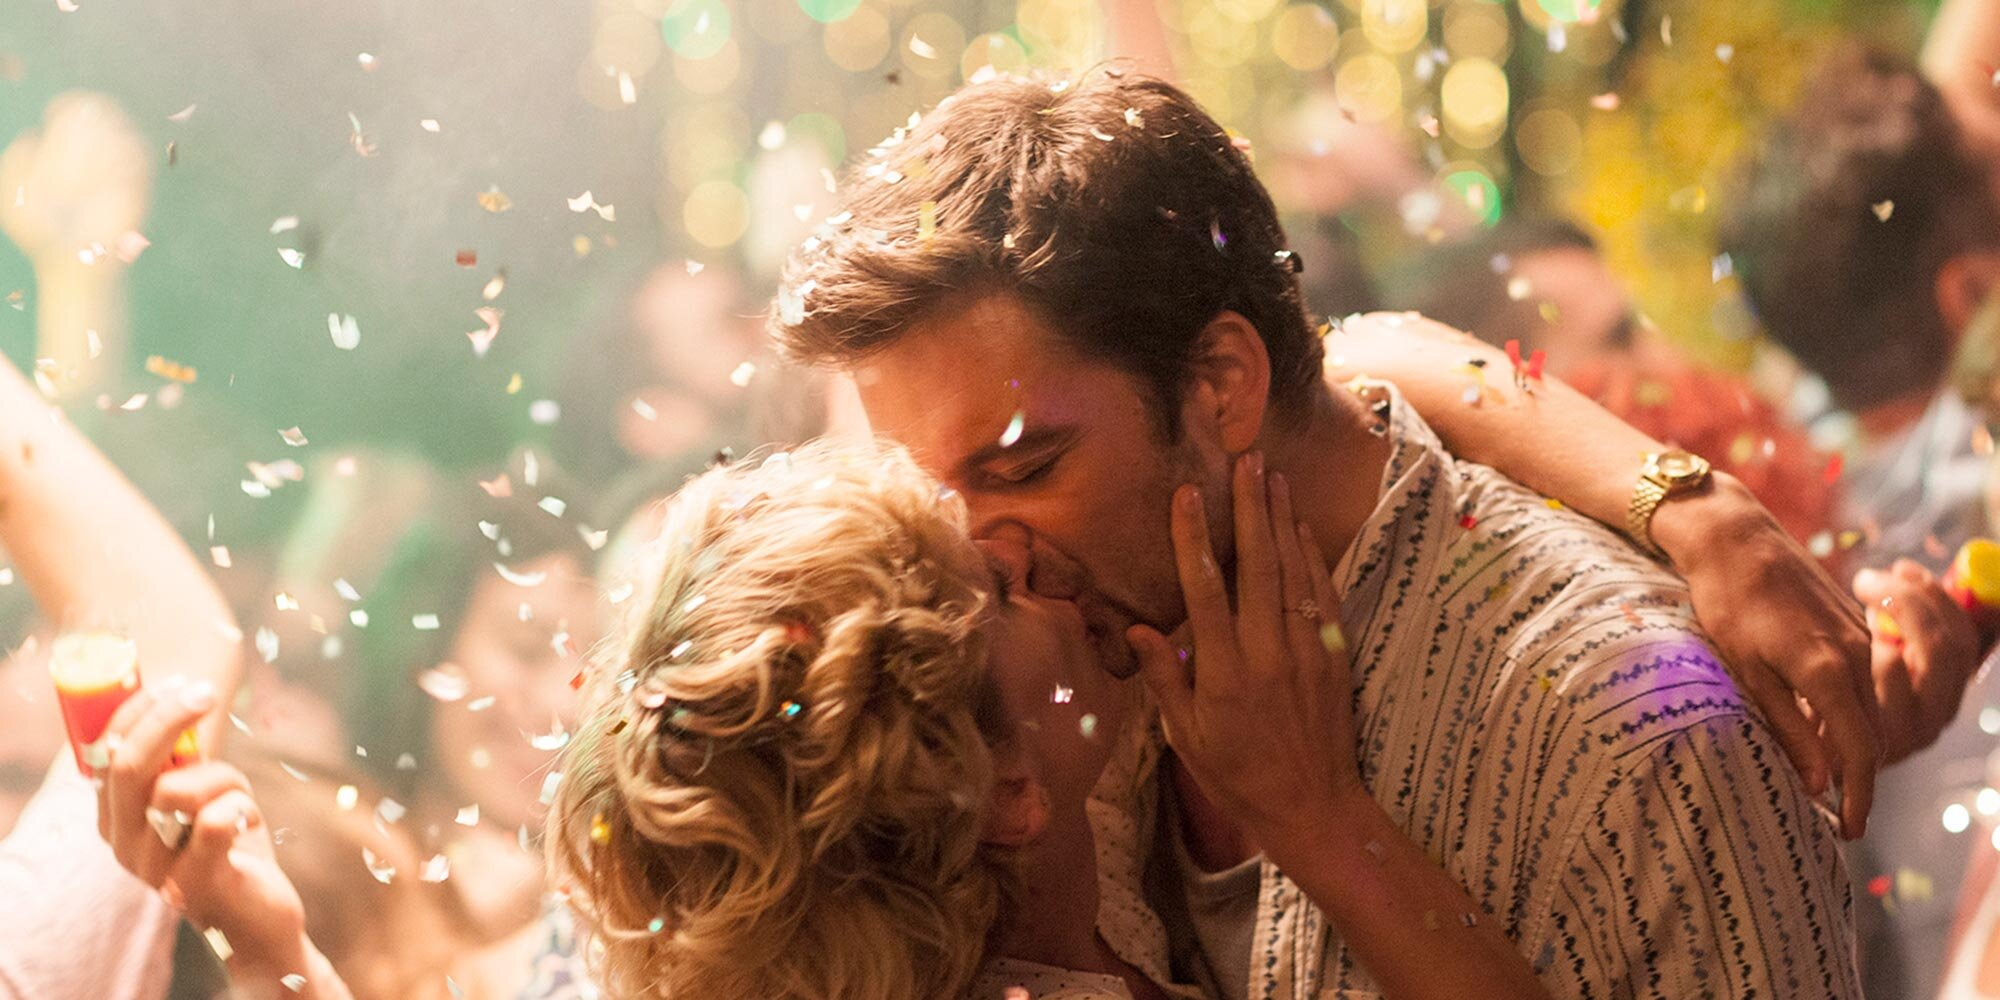 Sebastian Stan headlines a rocky romance abroad in intoxicated indie 'Monday'